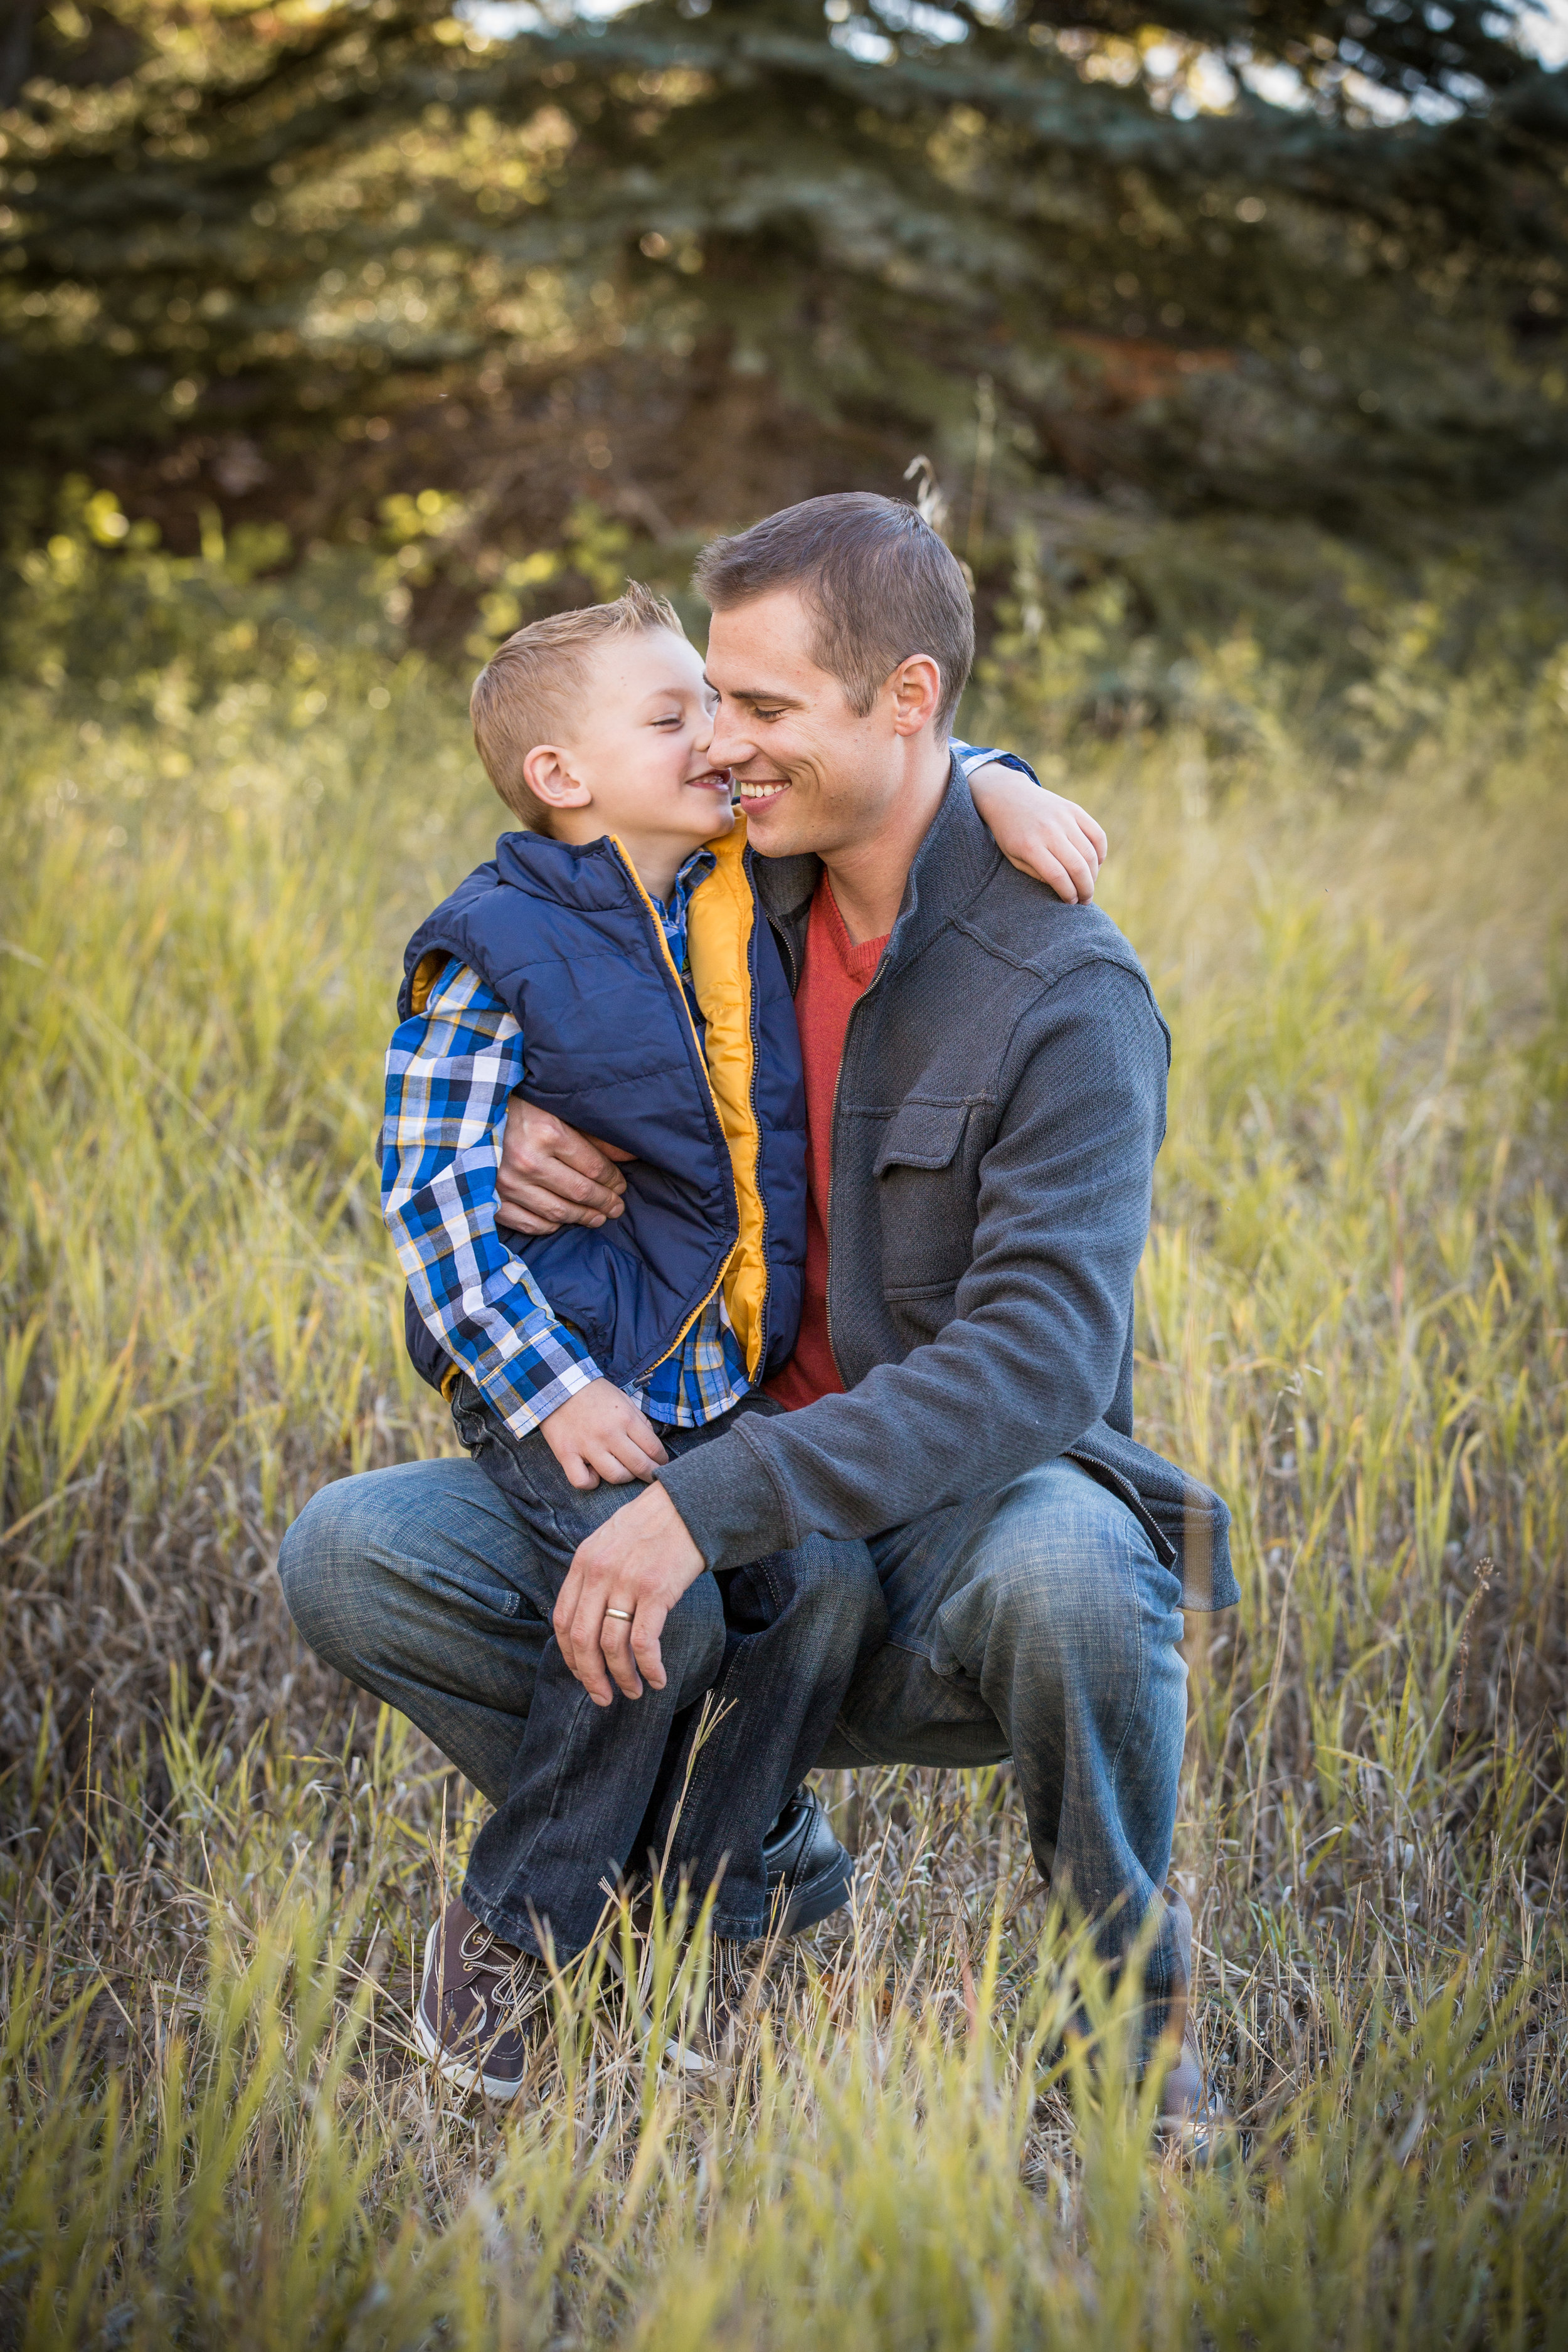 Sanderson Family_Think Darryl Photography_Family Portrait Photographer In Denver_Fly N Bee Park  -37.jpg